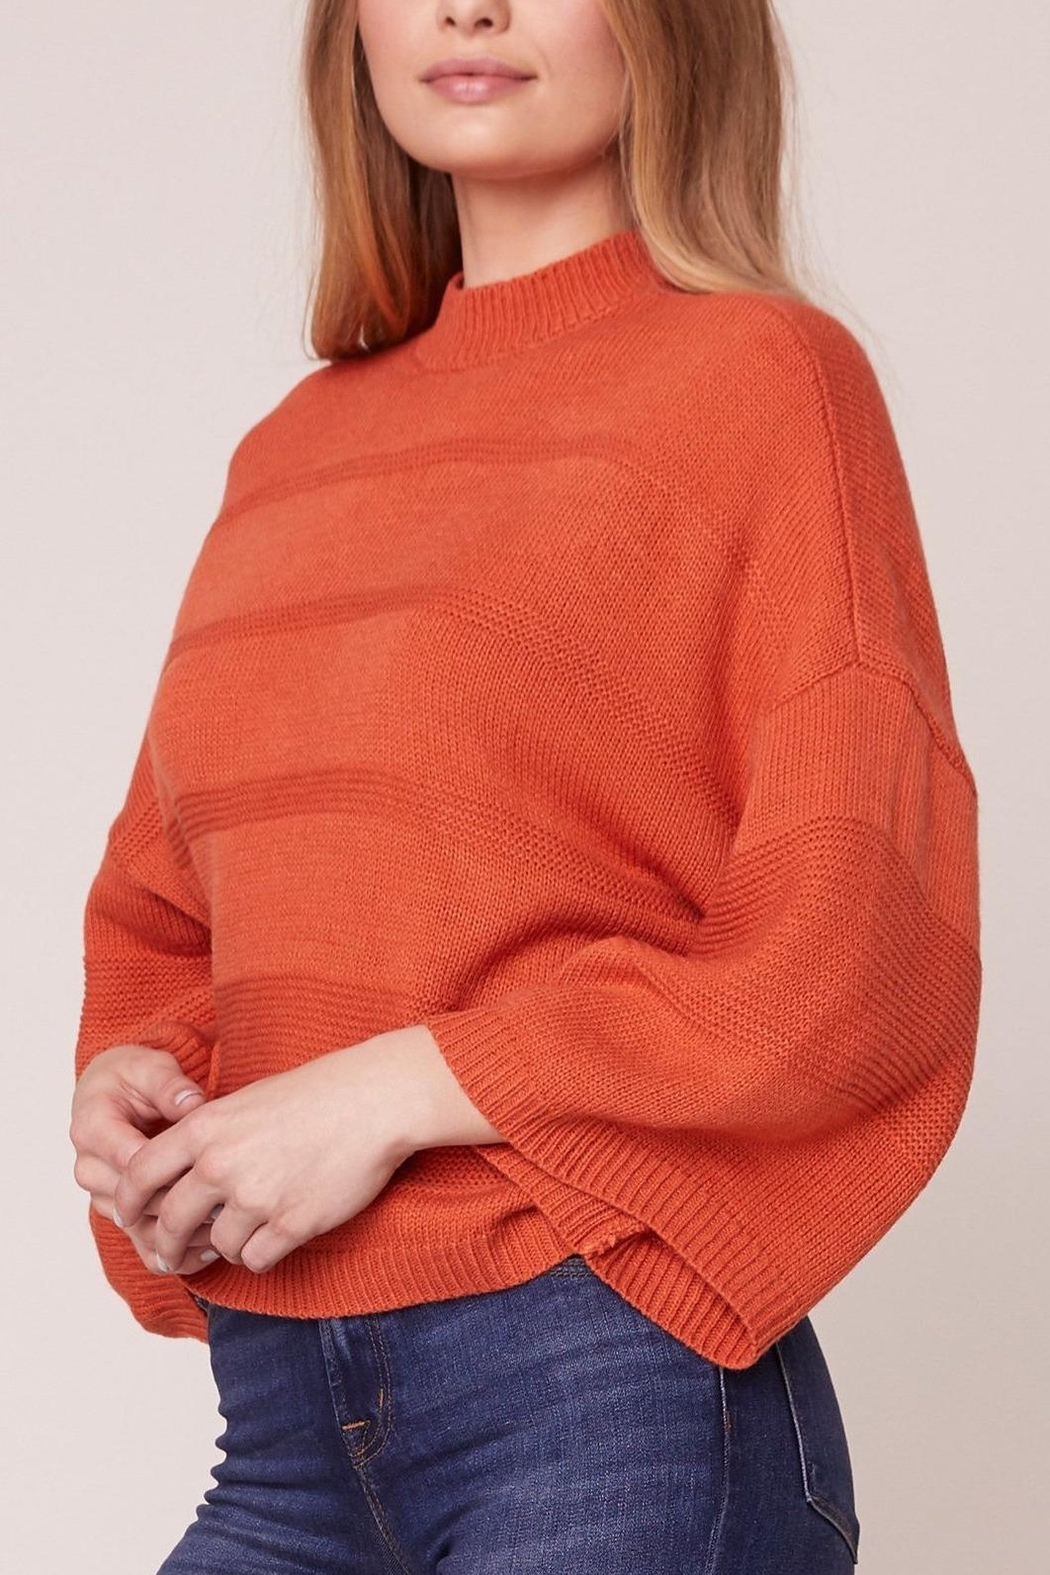 Jack by BB Dakota Orange Boxy 3/4 Sleeve Sweater - Side Cropped Image